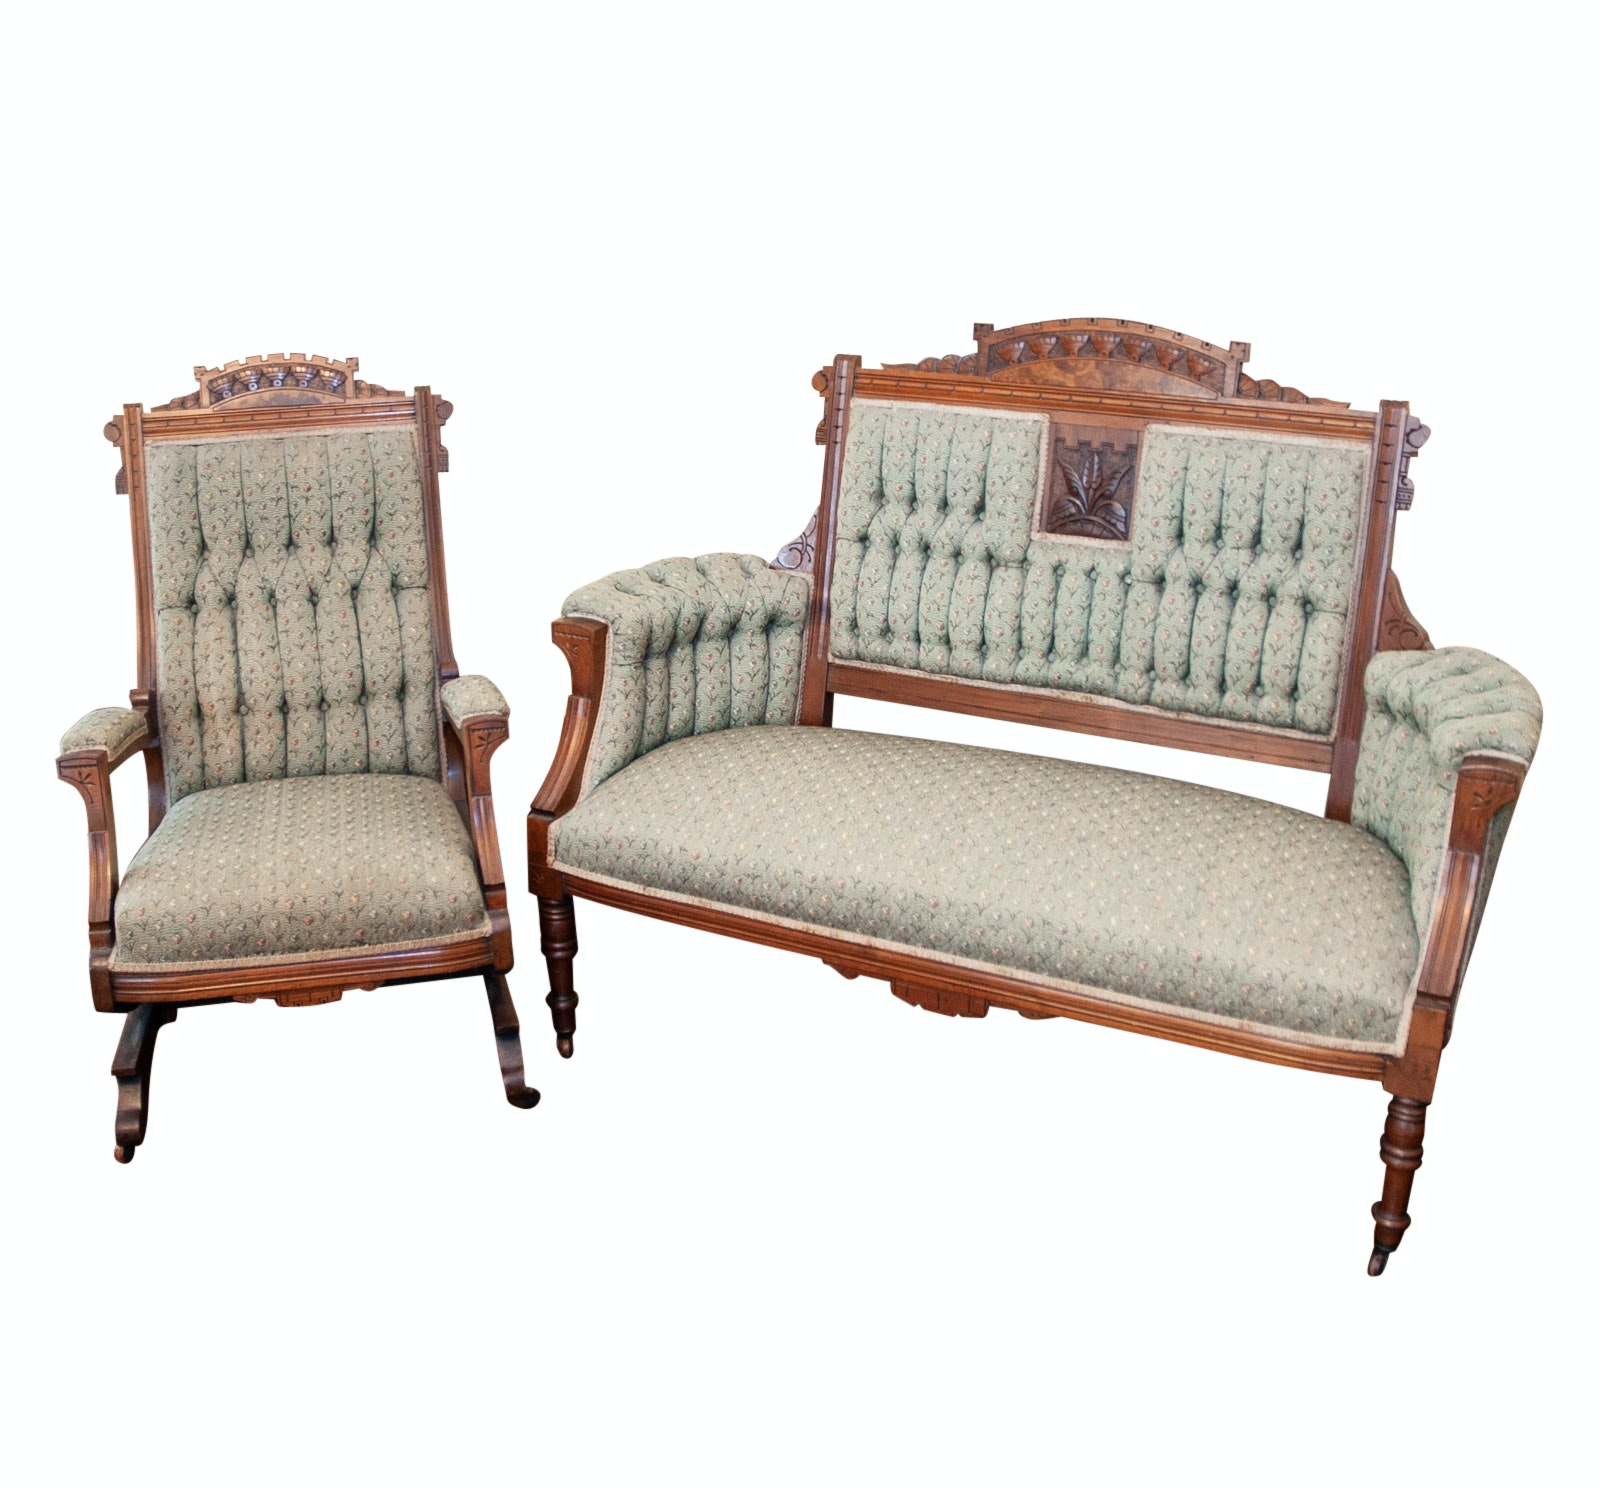 19th Century Walnut Eastlake Settee and Rocker